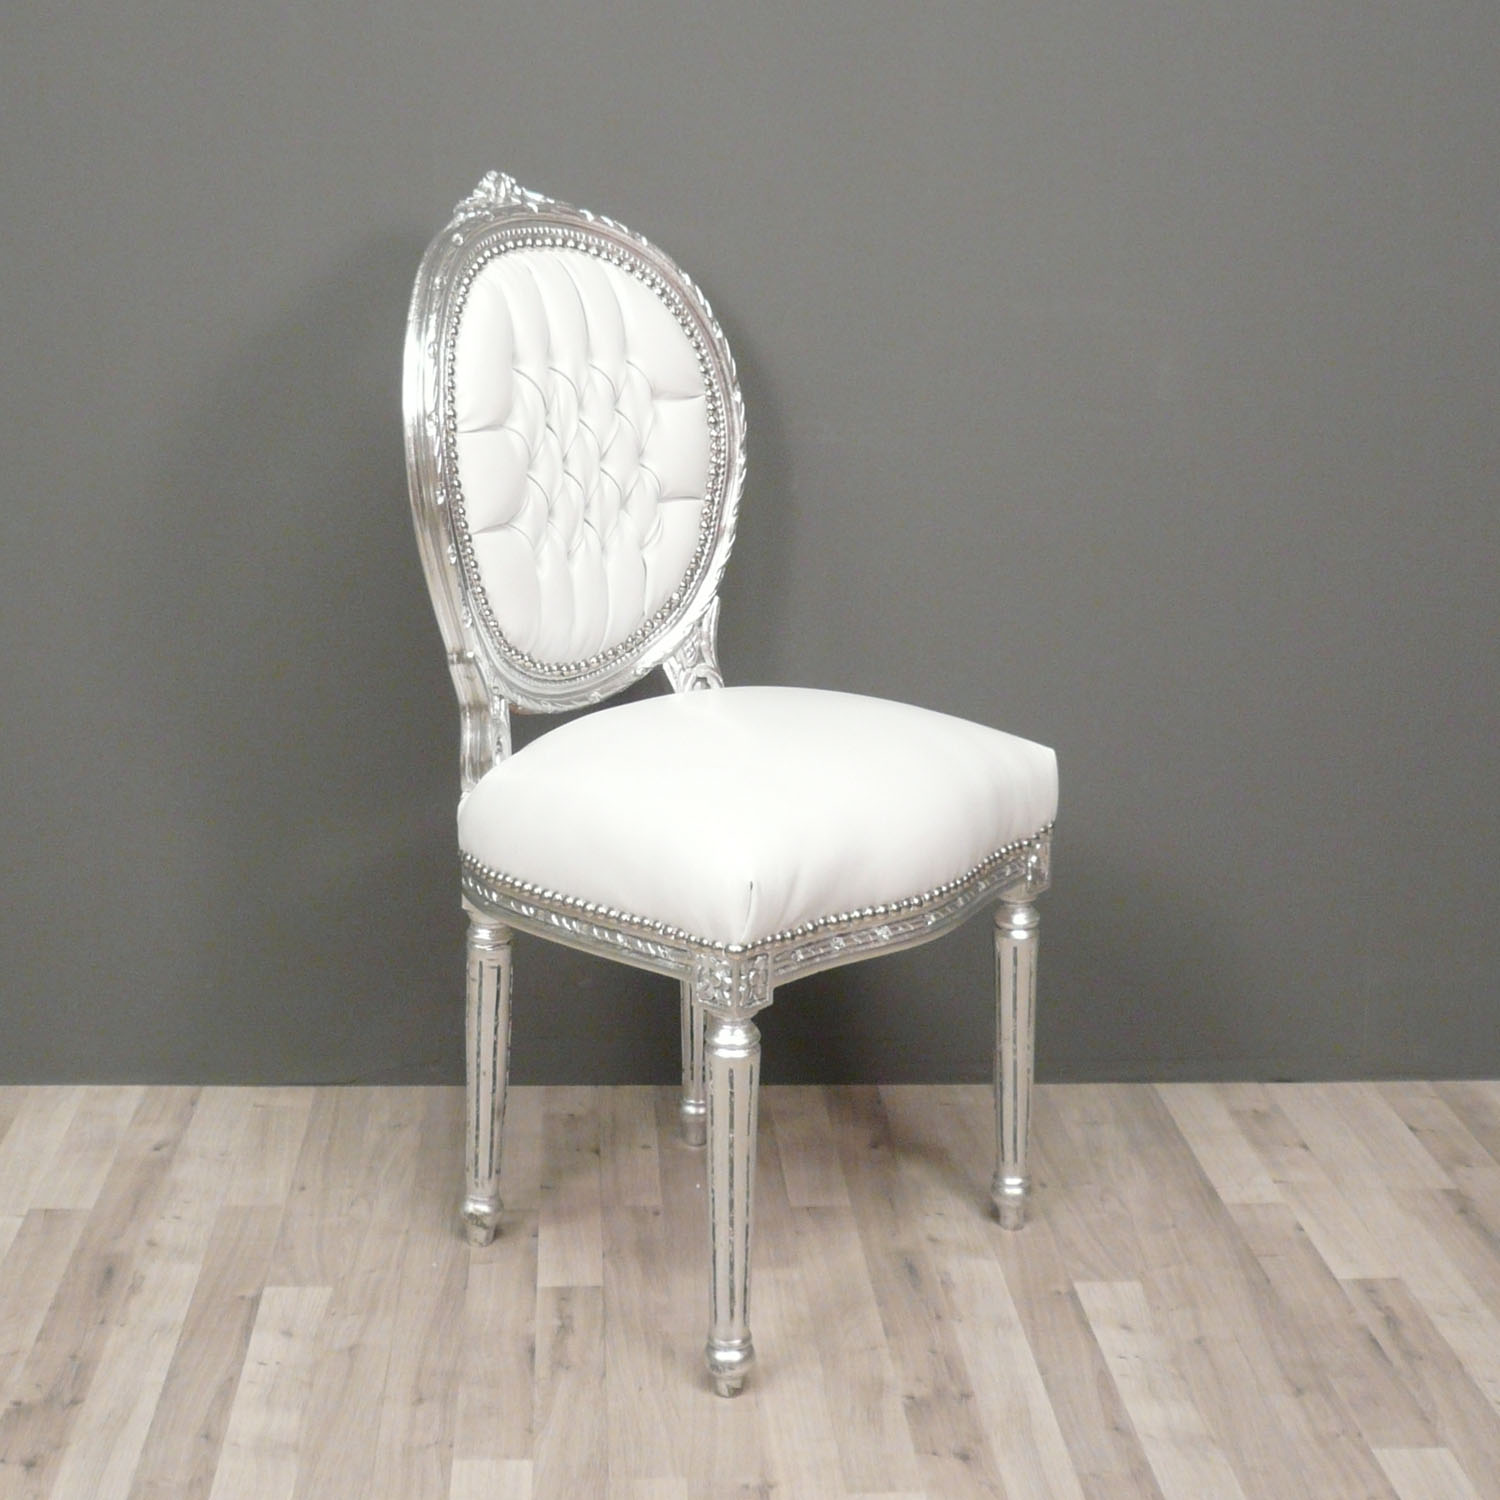 Chaise louis xvi chaise baroque meuble baroque - Sillas louis xvi ...